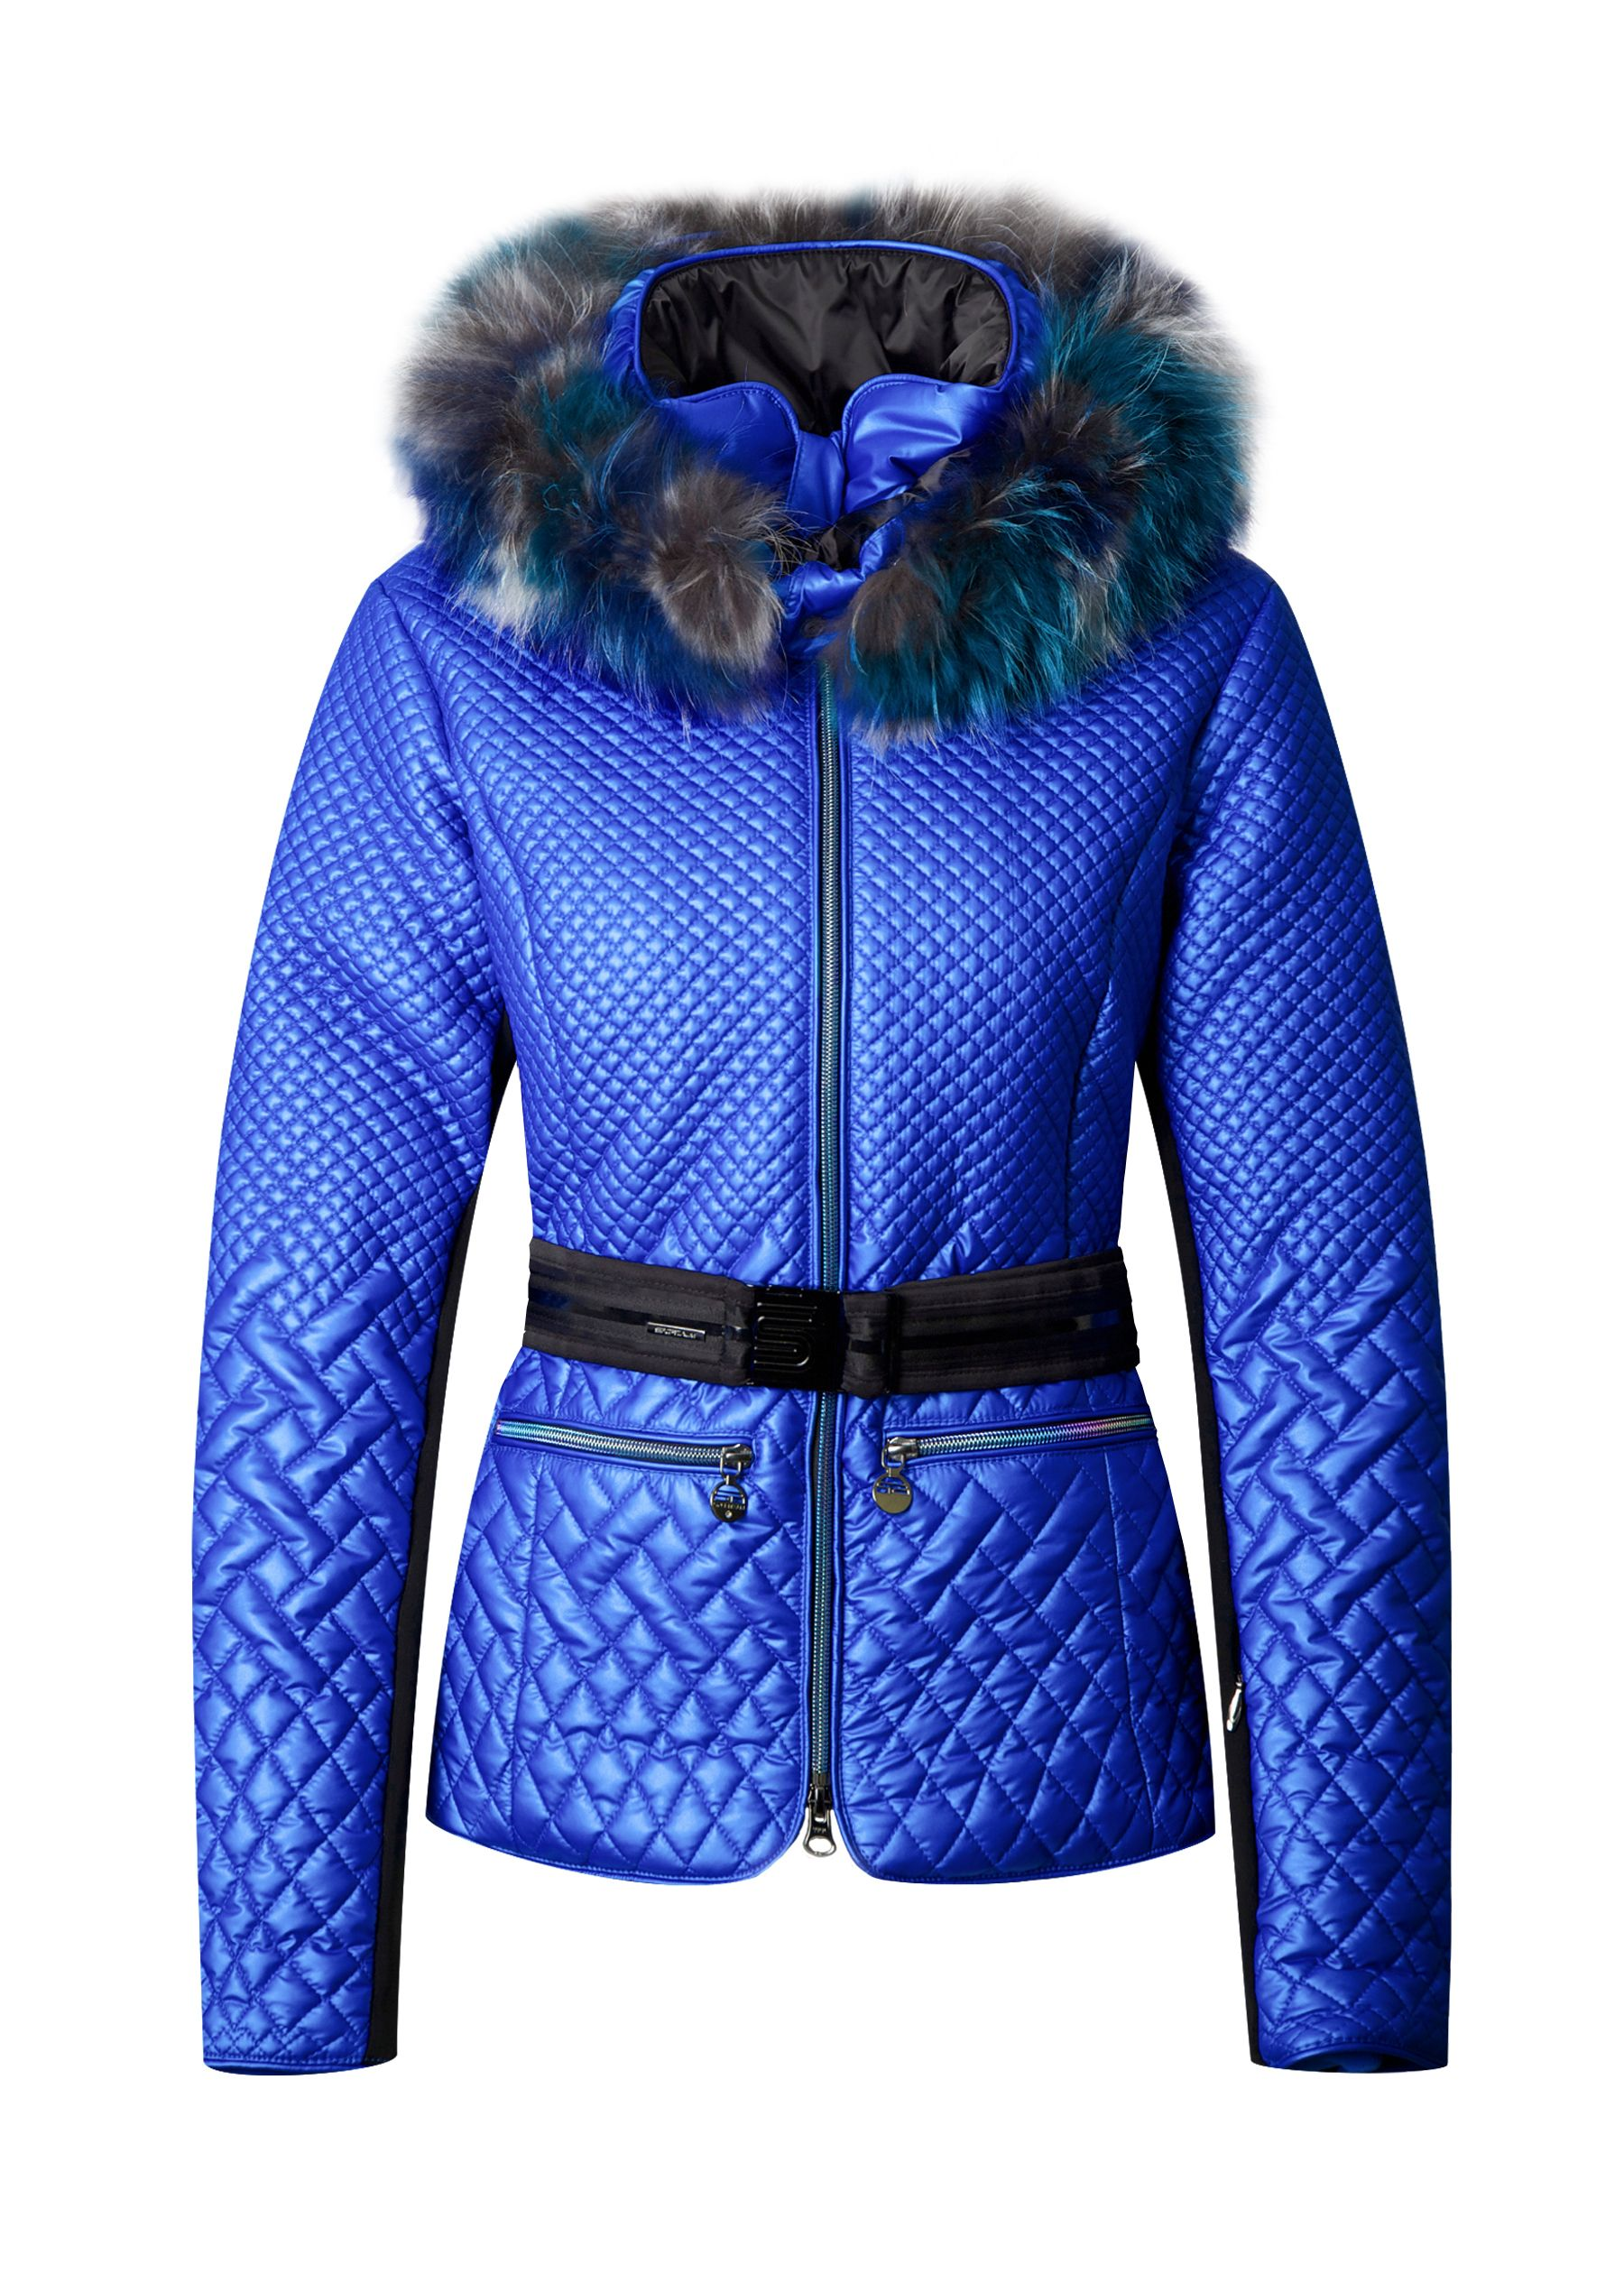 3e00a9b296 Sportalm Constrictor ski jacket - bright electric blue for the mountains!